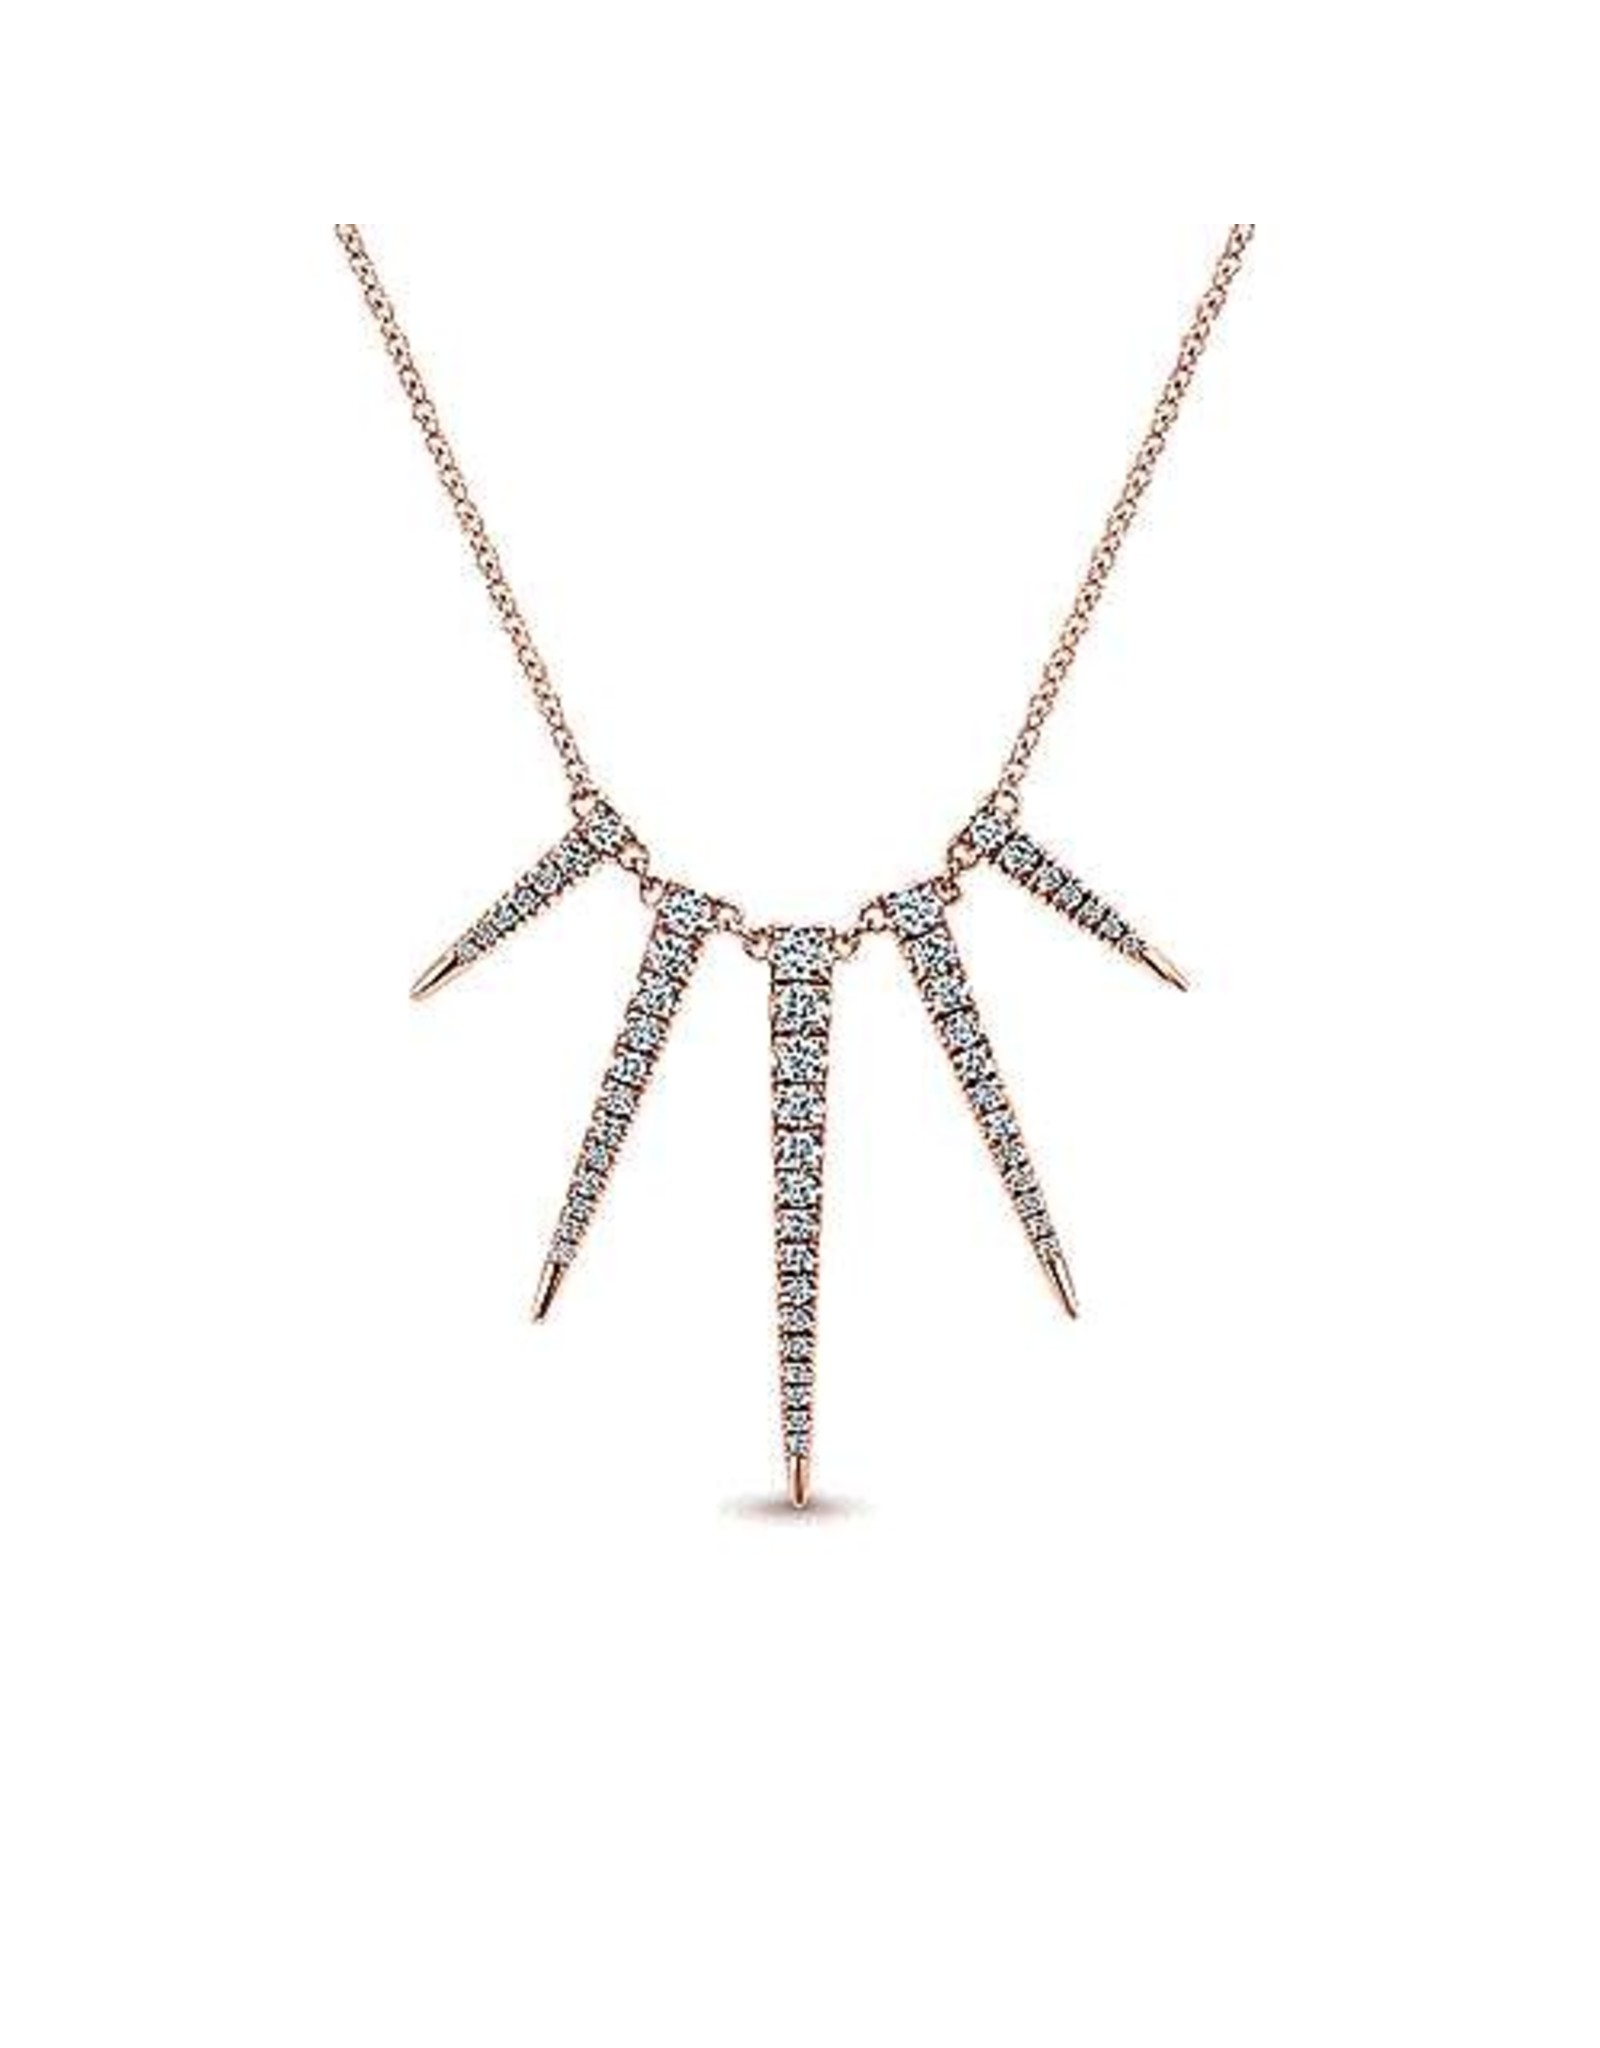 14K Rose Gold Edgy Diamond Spike Necklace, D: 0.62ct